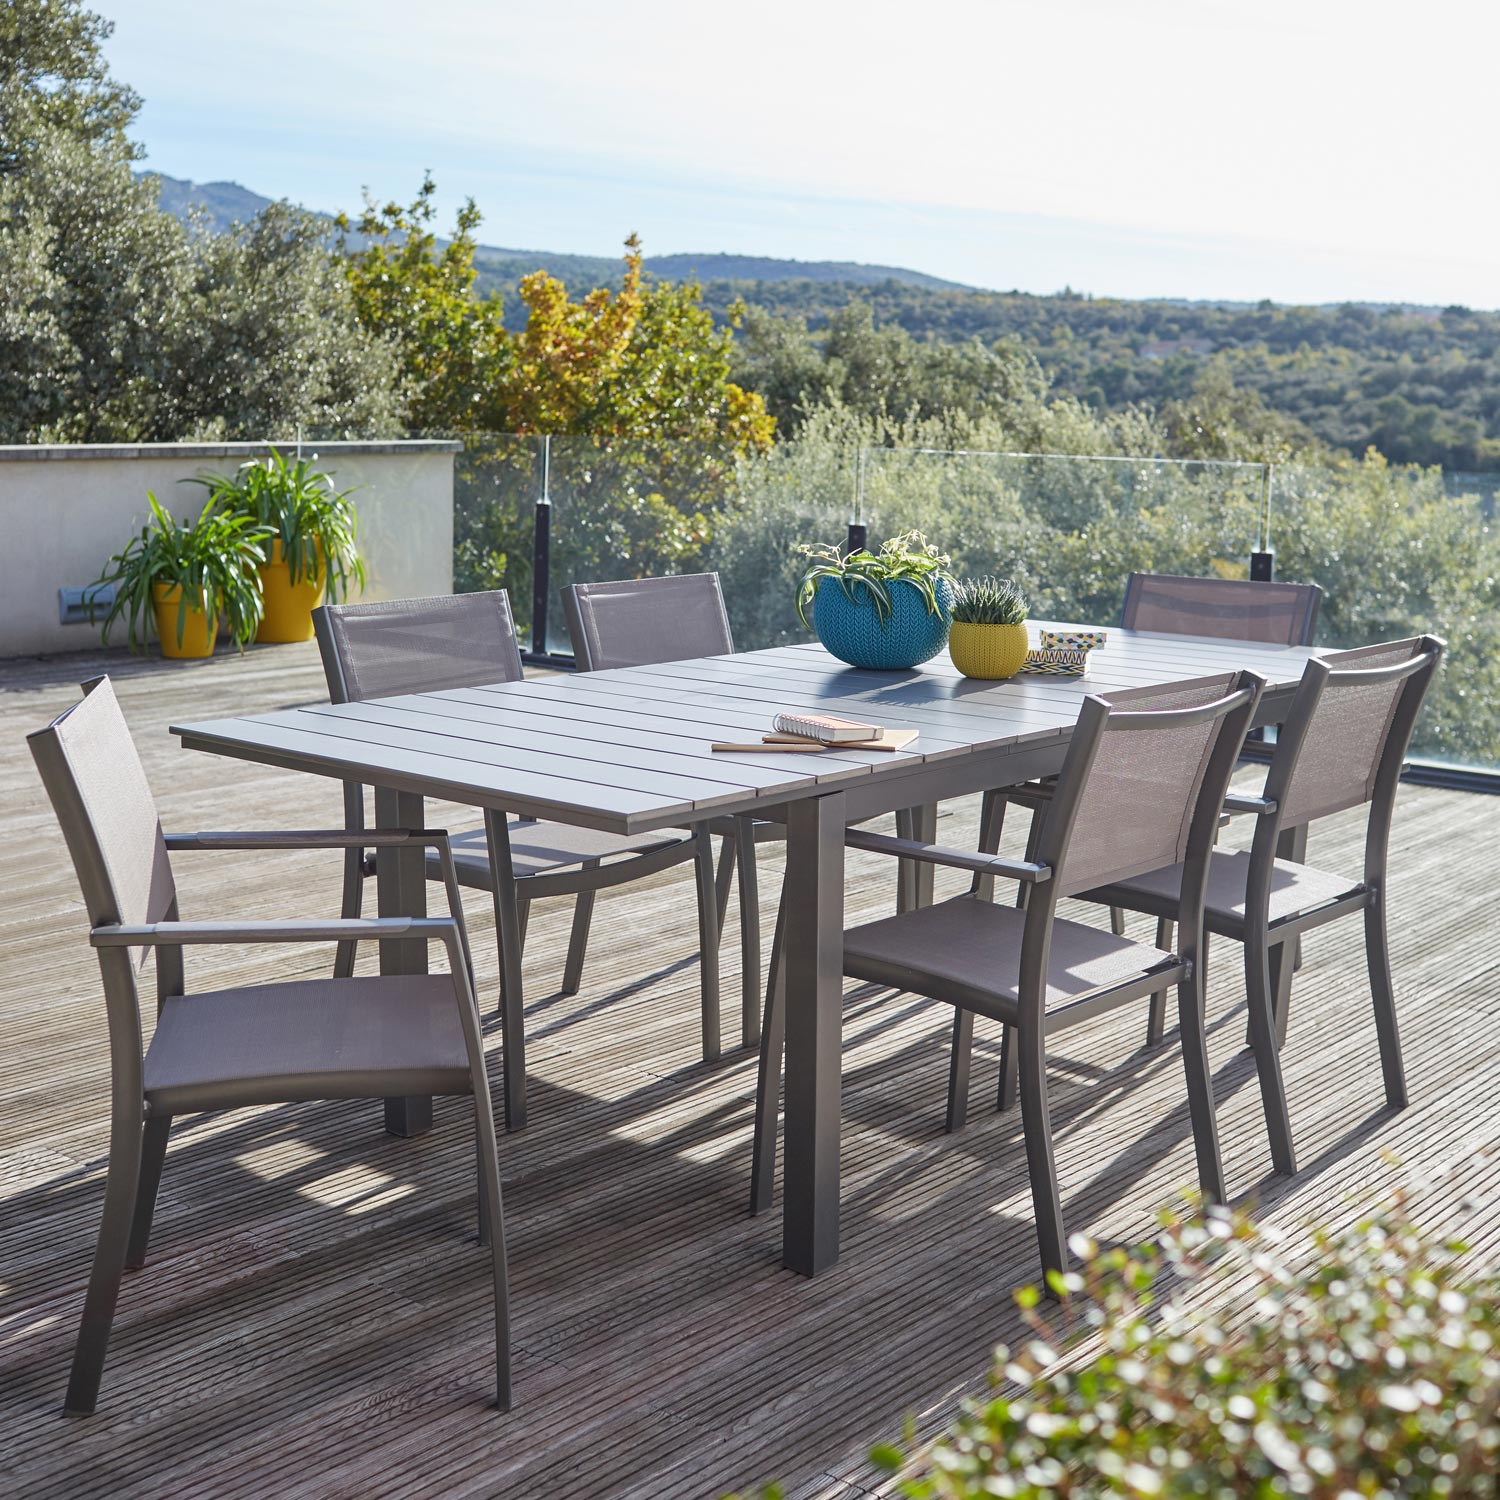 Salon de jardin salerno gris 6 personnes leroy merlin for Banco jardin leroy merlin